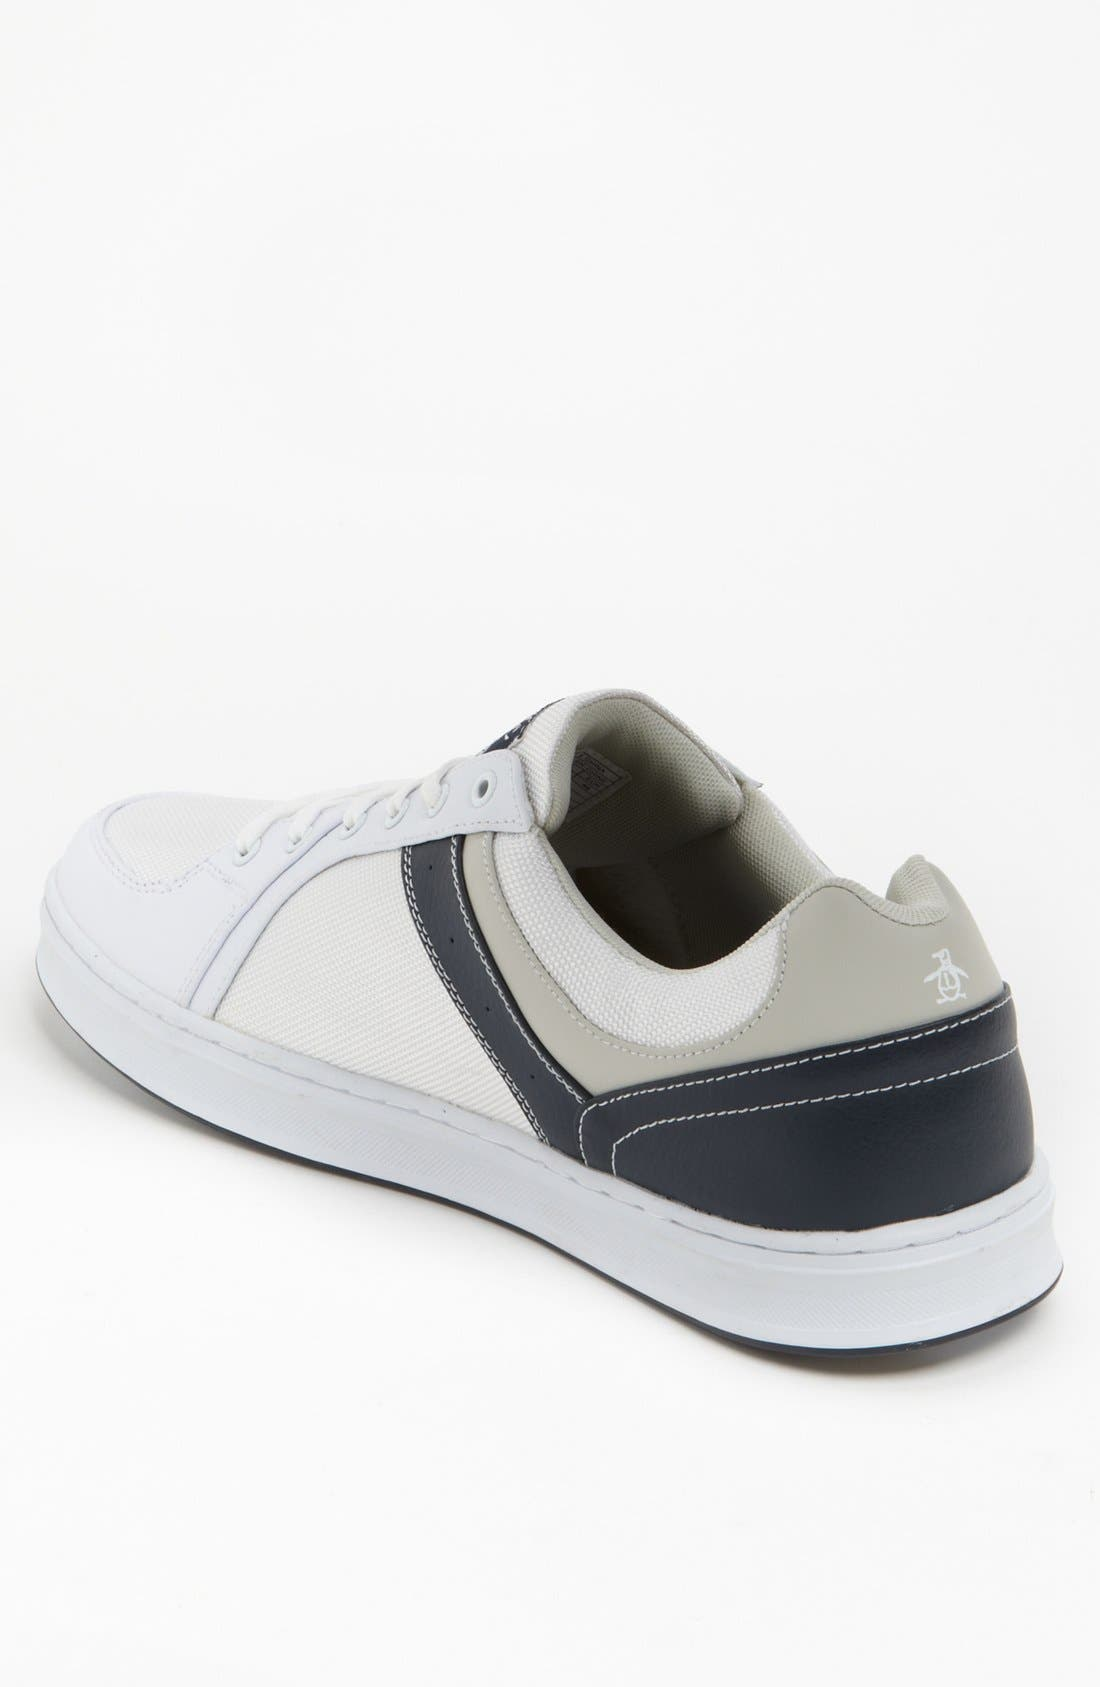 Alternate Image 2  - Original Penguin 'Front' Sneaker